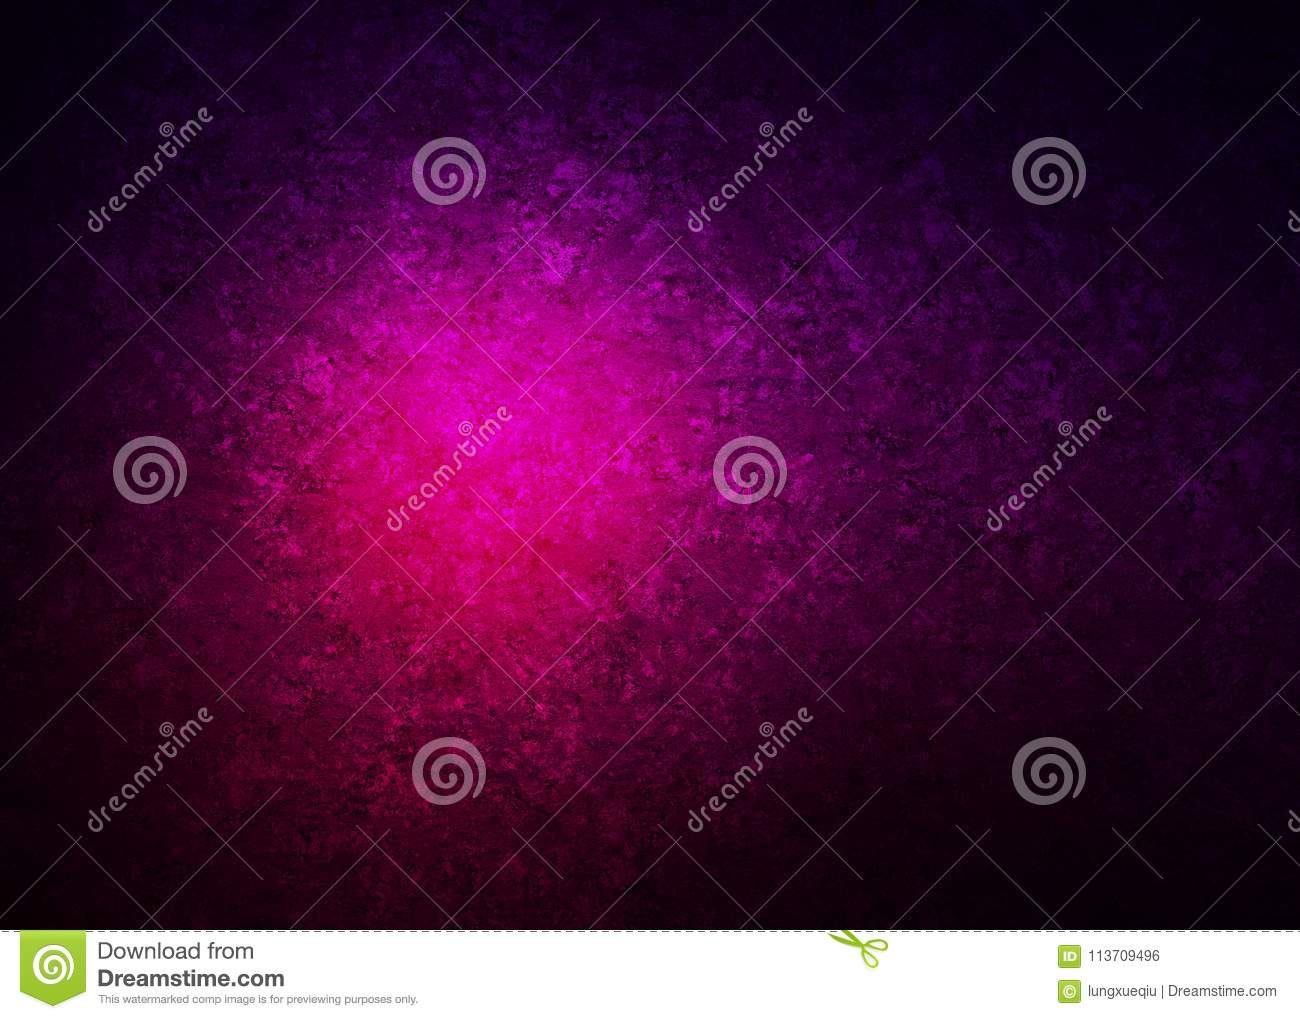 Futuristic Neo Violet Japanese Dark Purple Techno Digital Oriental Ornamental Pattern Texture Background Illustration Wallpaper